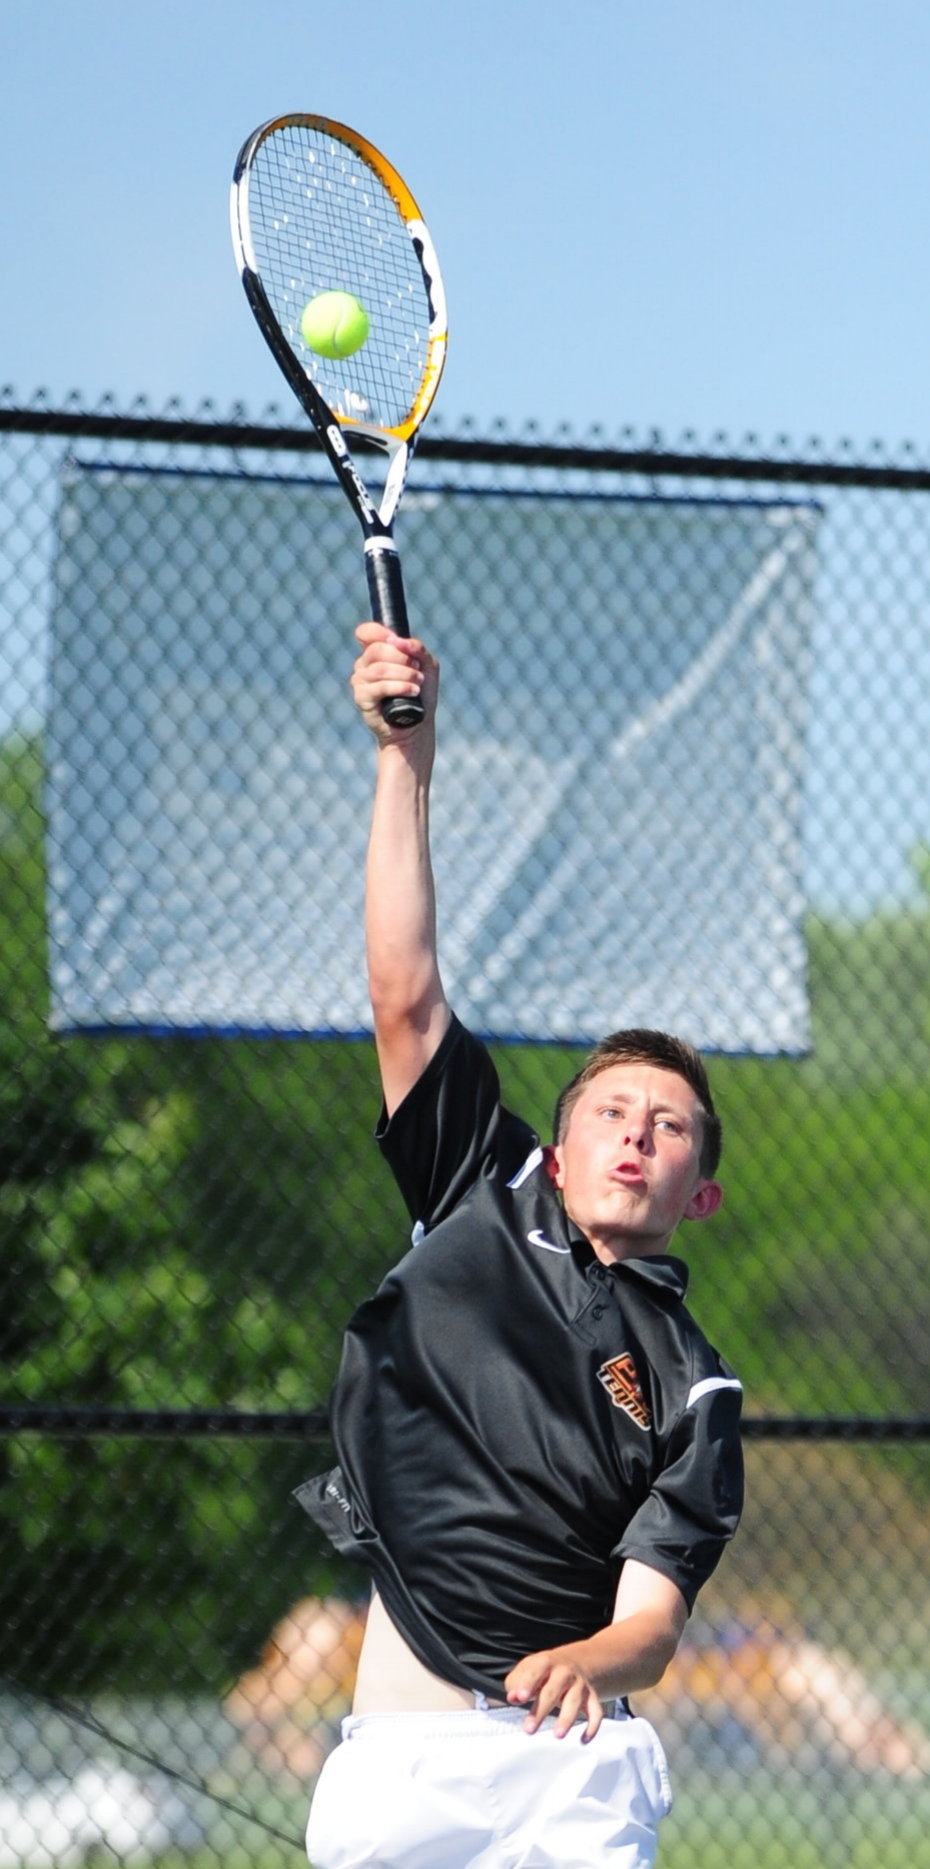 NICK INGRAM/Citizen photo Platte County junior Noah Singer hits a serve during a Class 2 Sectional 8 singles match against Staley's Carson Gates on Monday, May 15 in Kearney, Mo.